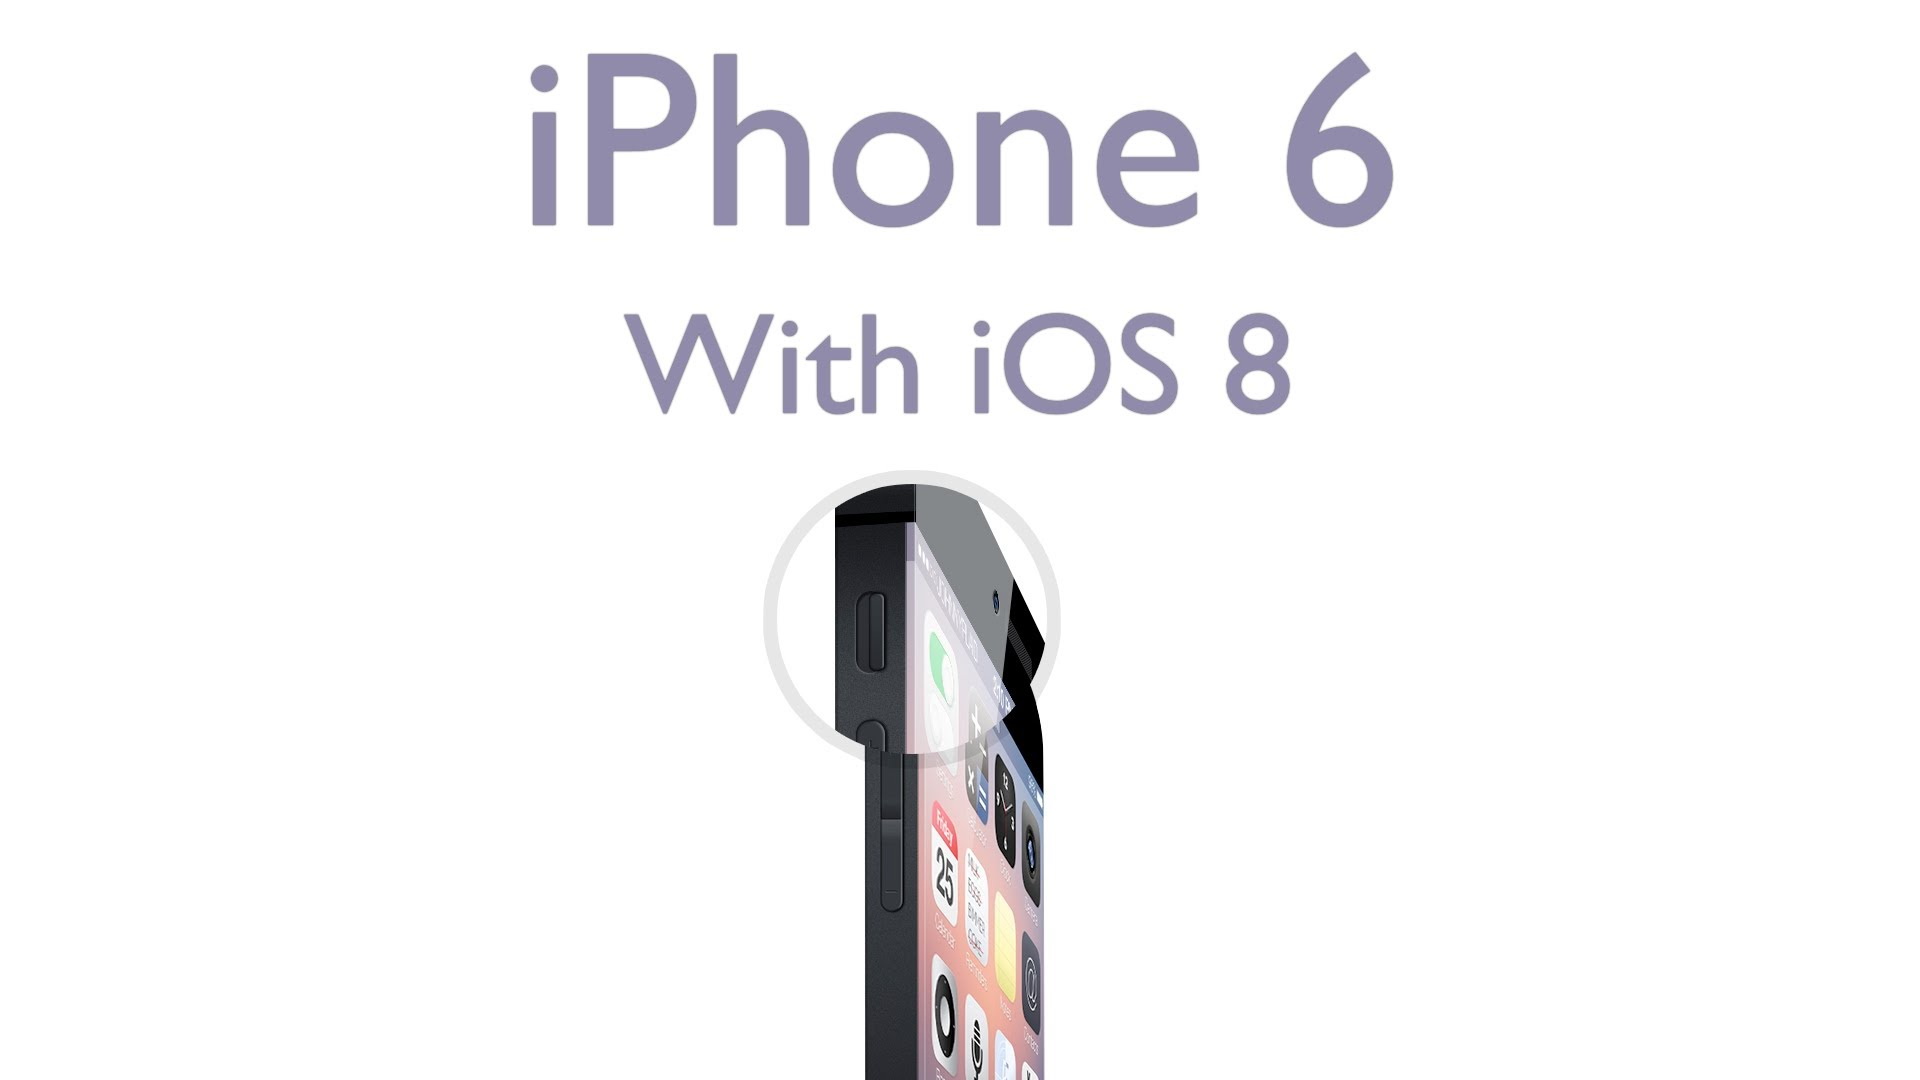 What Would an iPhone with iOS 8 Look Like?